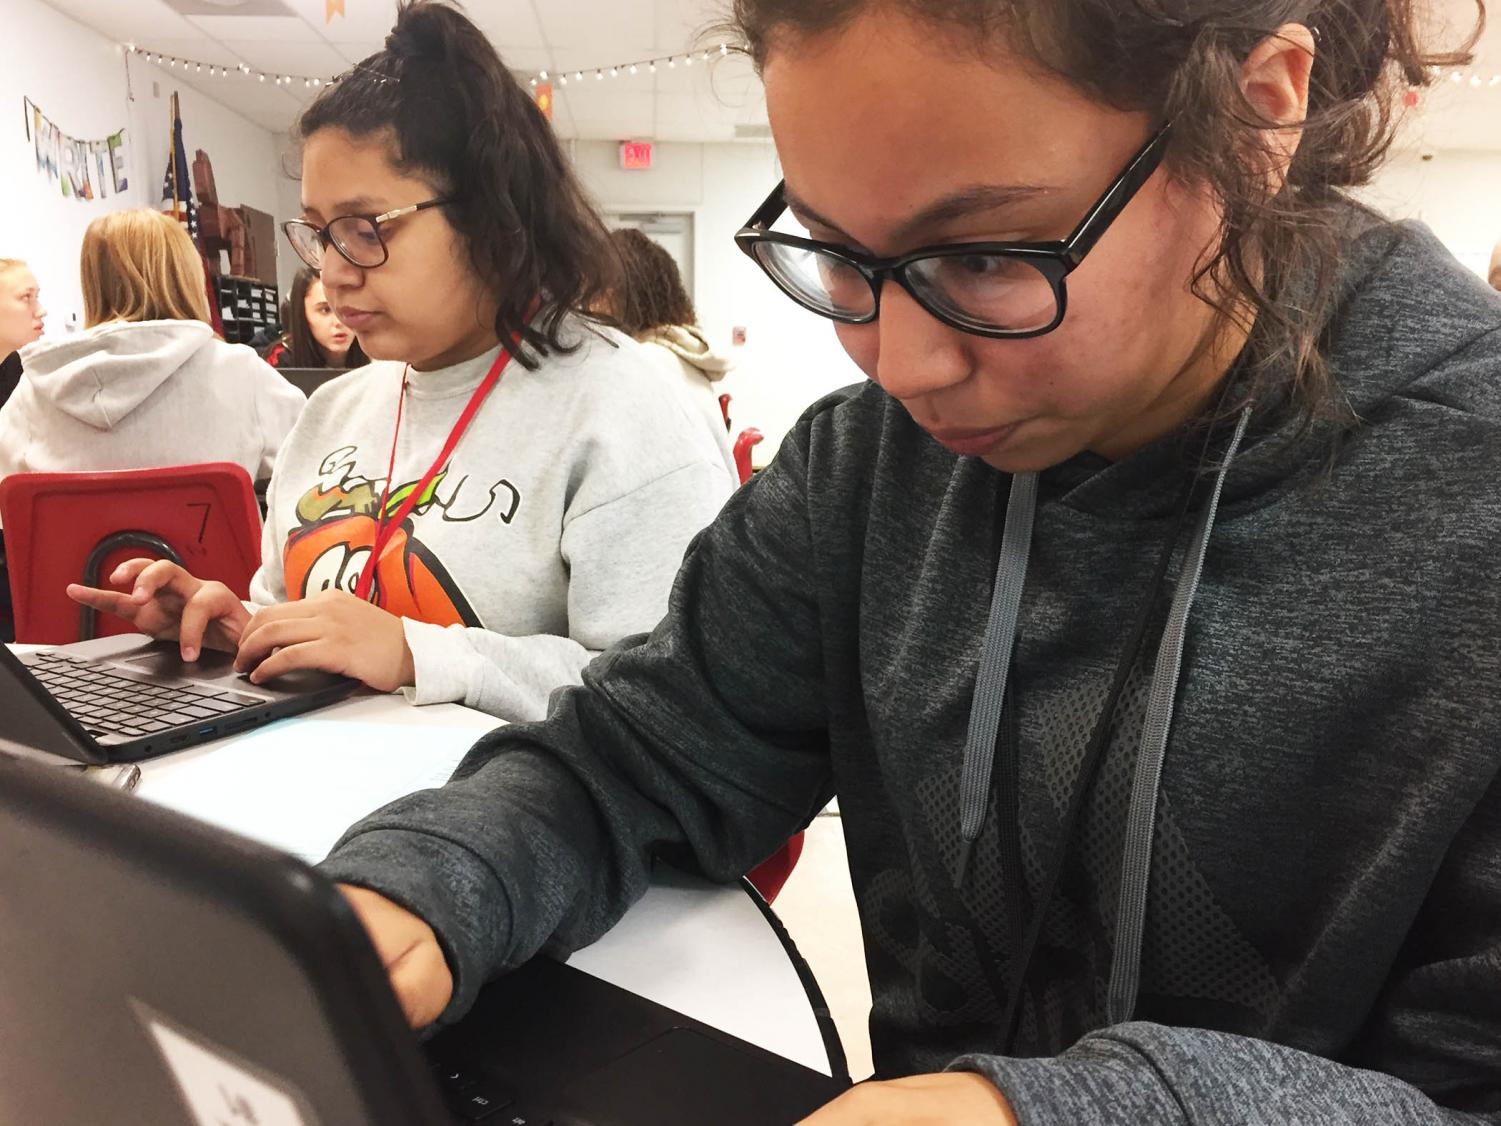 Sophomores Janette Chavez and Melanie Sosa work hard on their Model UN resolutions despite it being unfamiliar. Photo by Madison Donovan